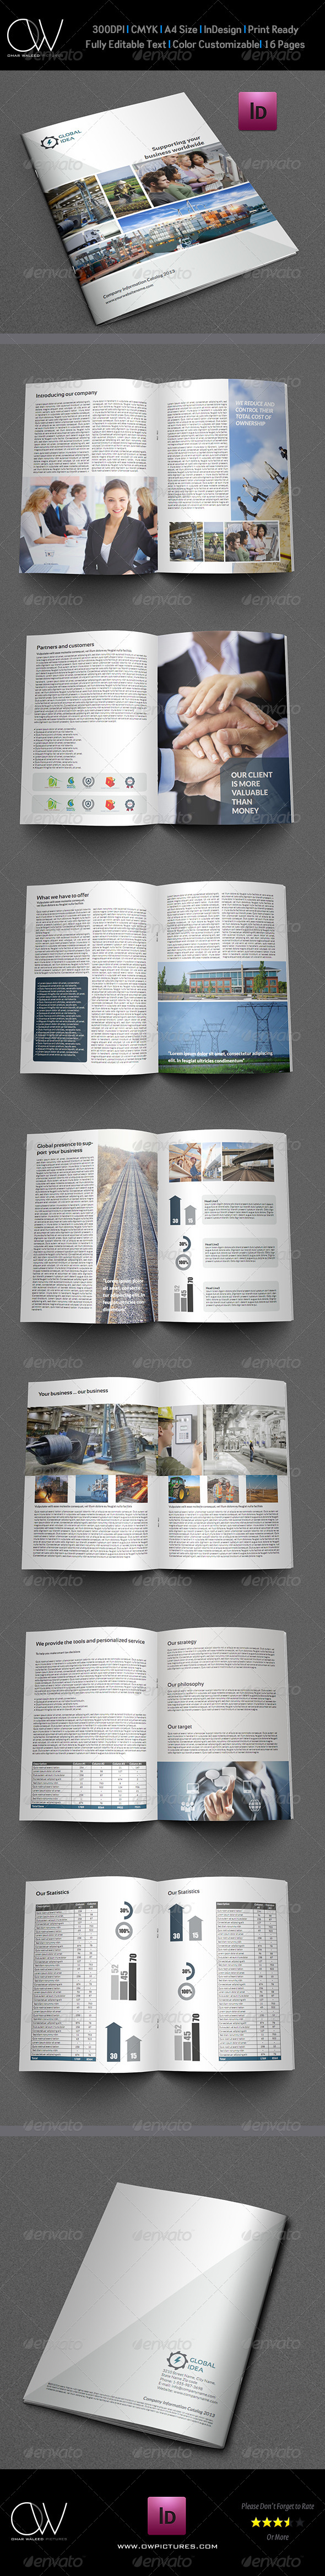 GraphicRiver Company Brochure Template Vol.5 16 Pages 5515678